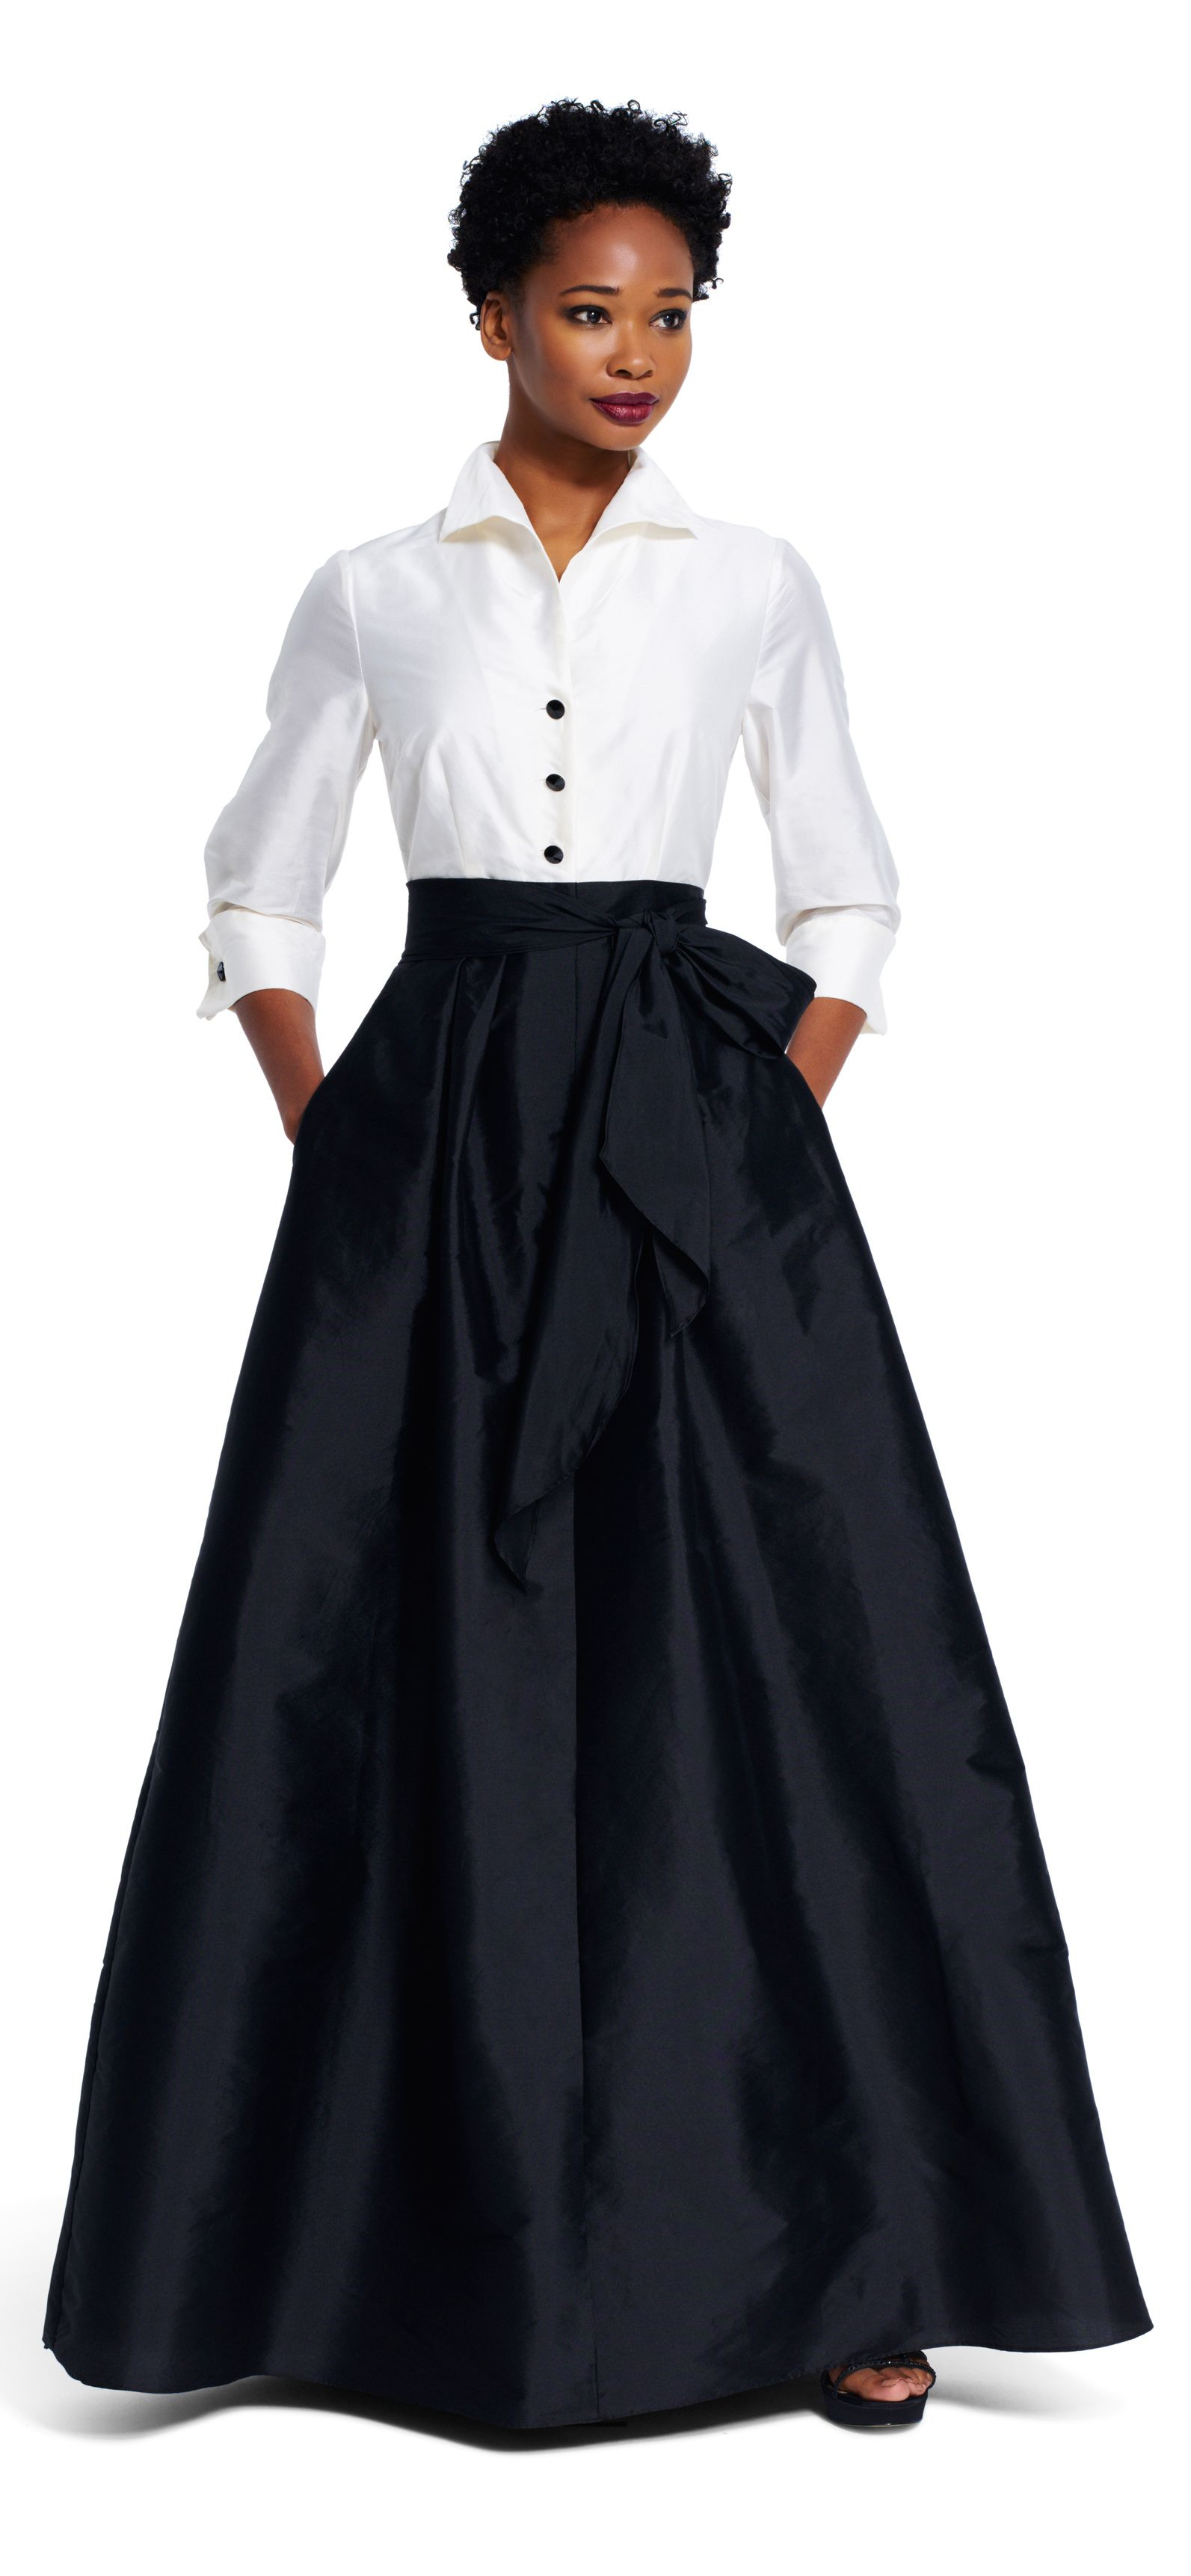 Taffeta Blouse Ball Gown with Tie Waist | Ball skirt, High low and ...